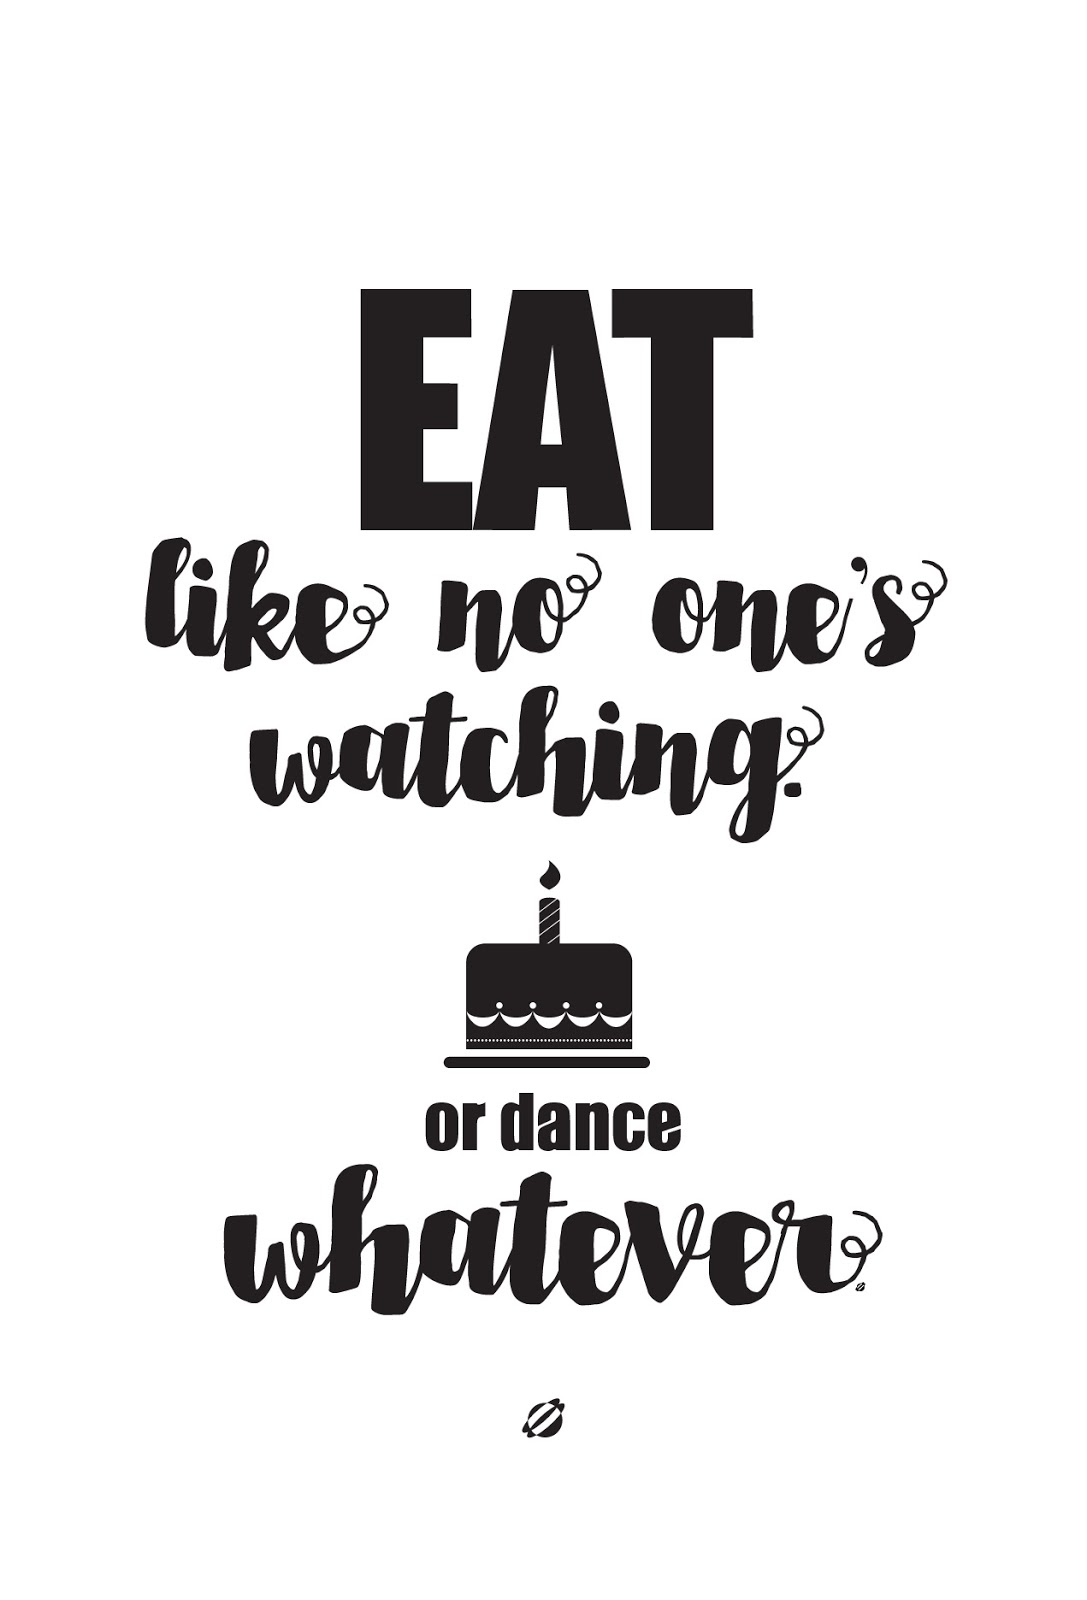 LostBumblebee ©2015 MDBN Eat Like No One is Watching :: Free - Donate to download - Printable :: Personal Use Only.